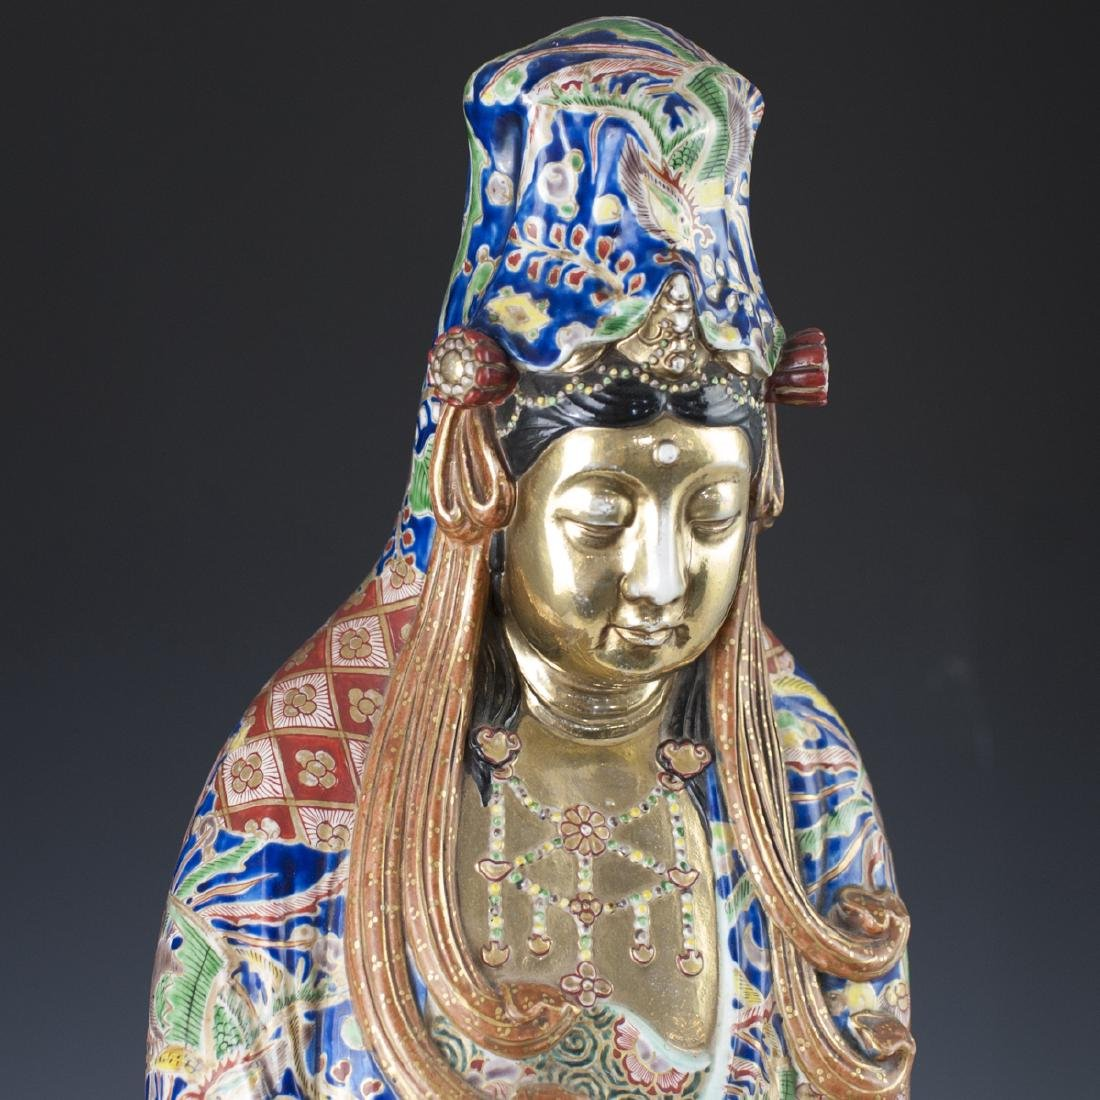 Antique Chinese Enameled Porcelain Guanyin - 2